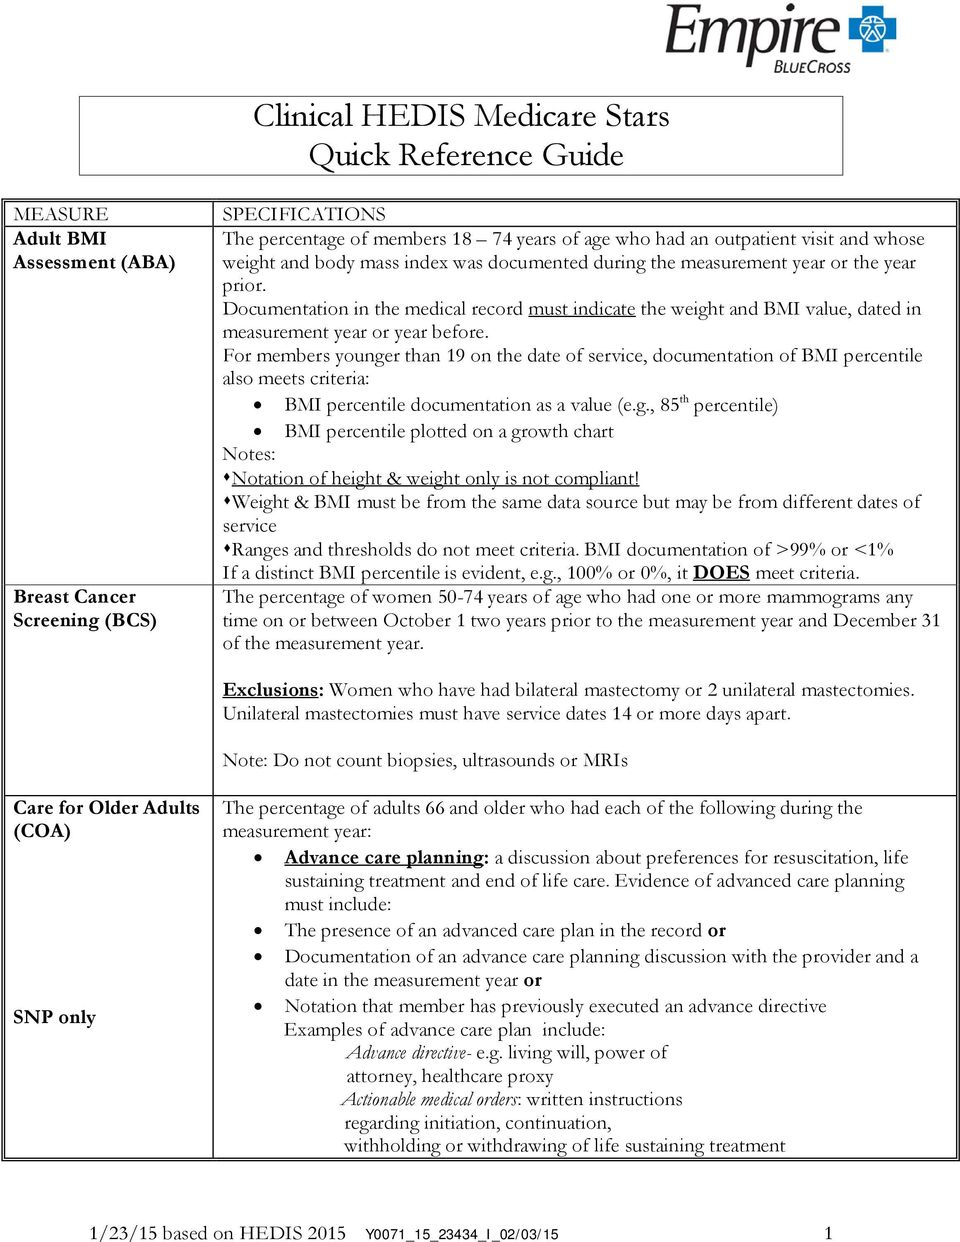 clinical hedis medicare stars quick reference guide pdf rh docplayer net HEDIS Measures 2014 HEDIS 2014 Volume 2